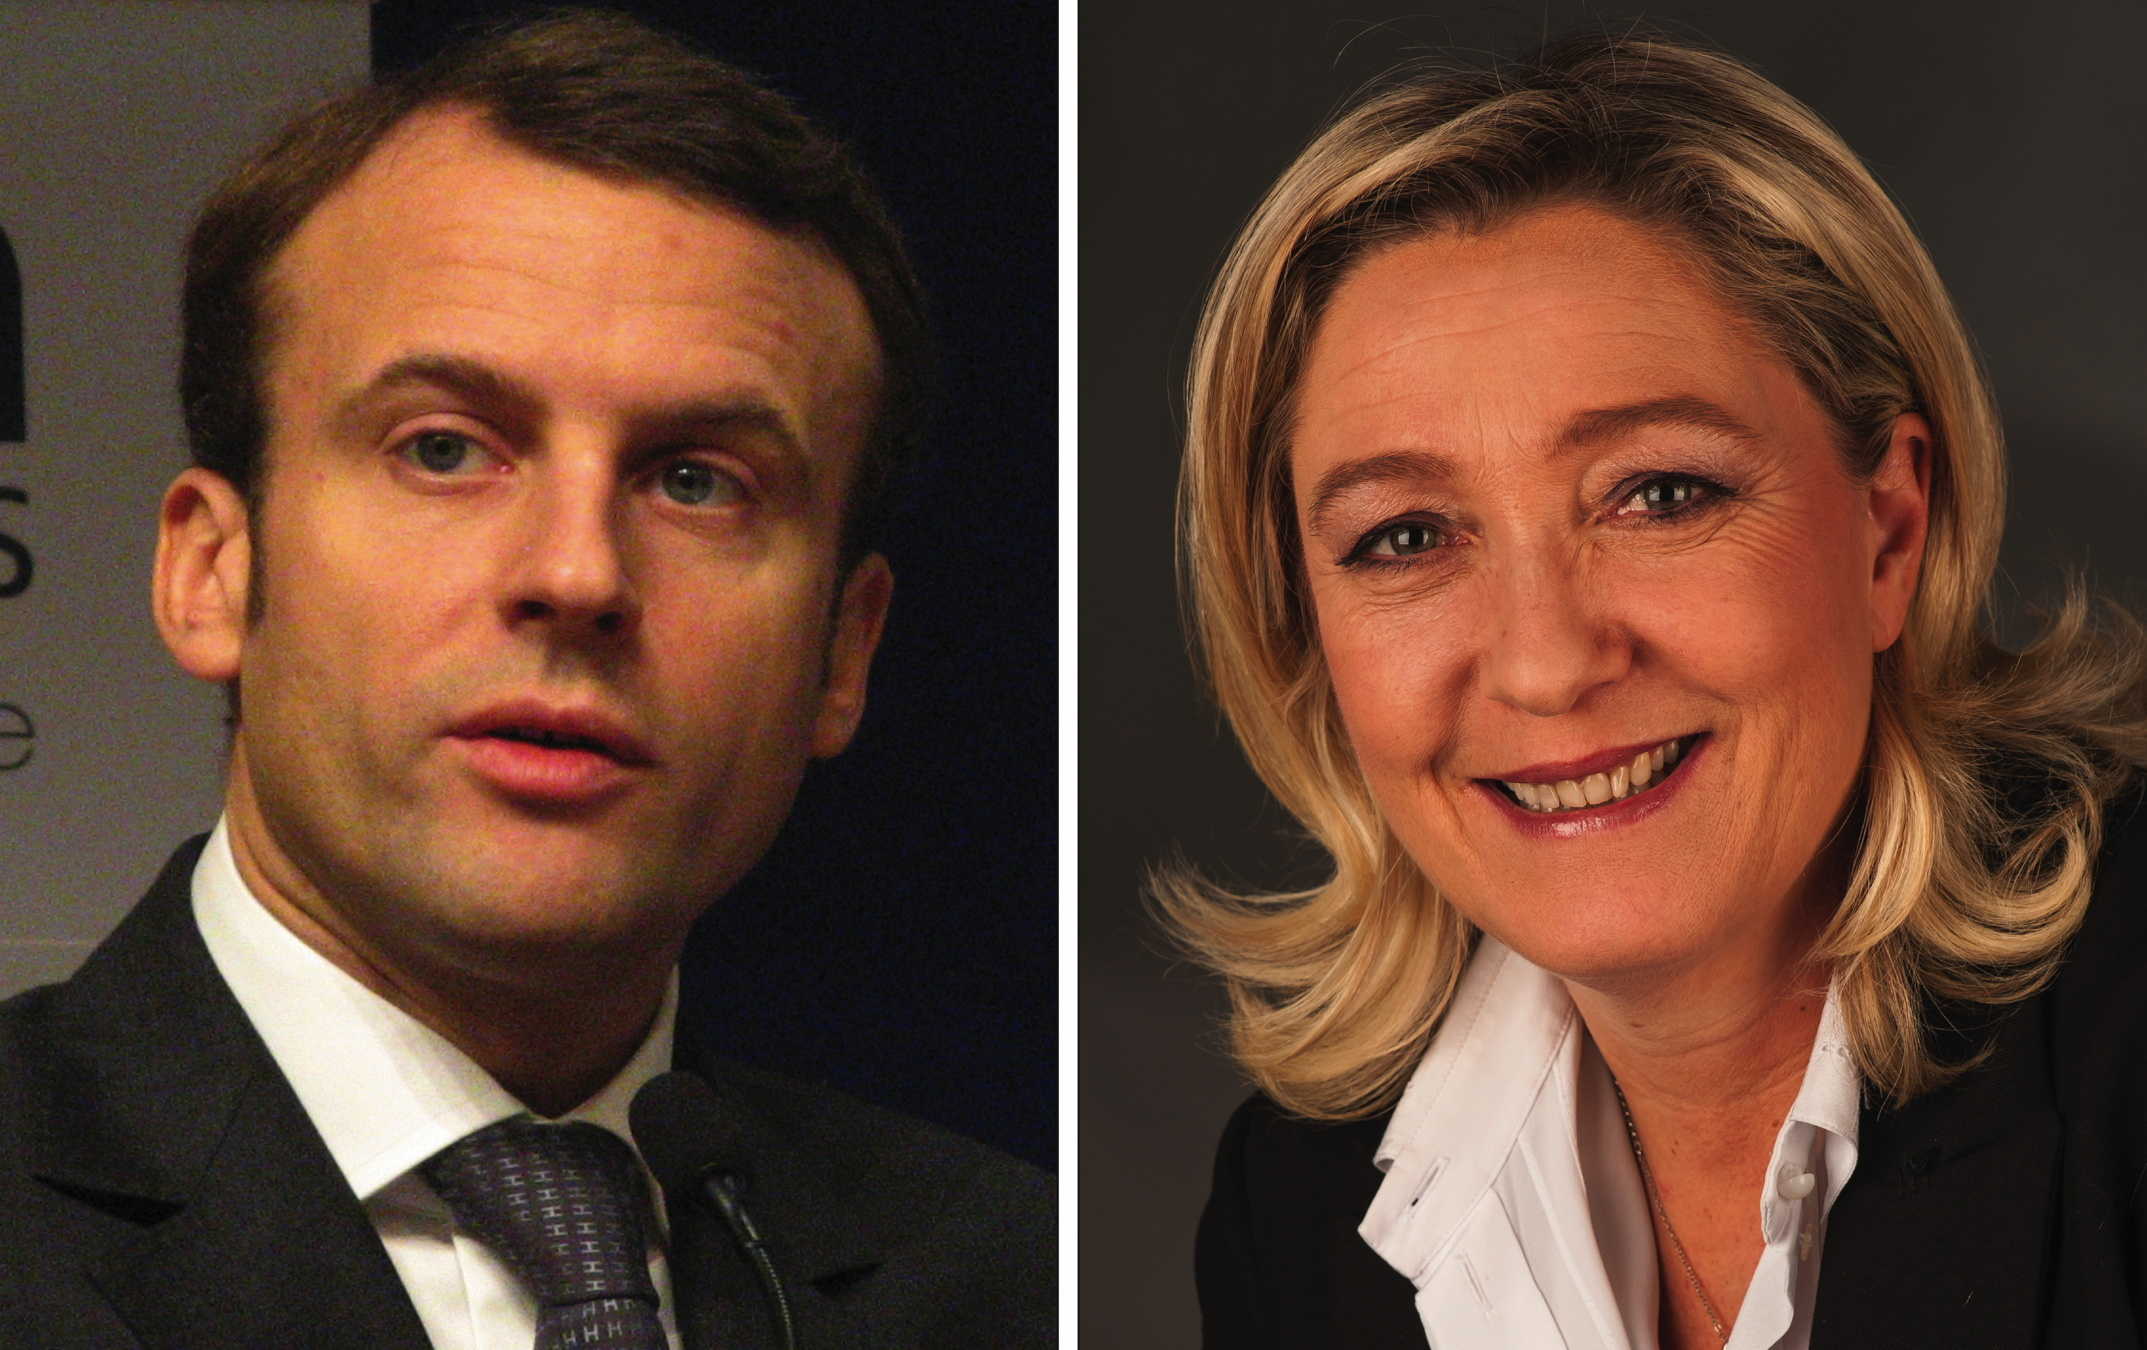 Emmanuel macron is frances youngest leader since napoleon emmanuel macron and marine le pen photo credit by copyleft 2 foto ag gymnasium melle cc by sa 40 via wikimedia commons robcynllc Image collections